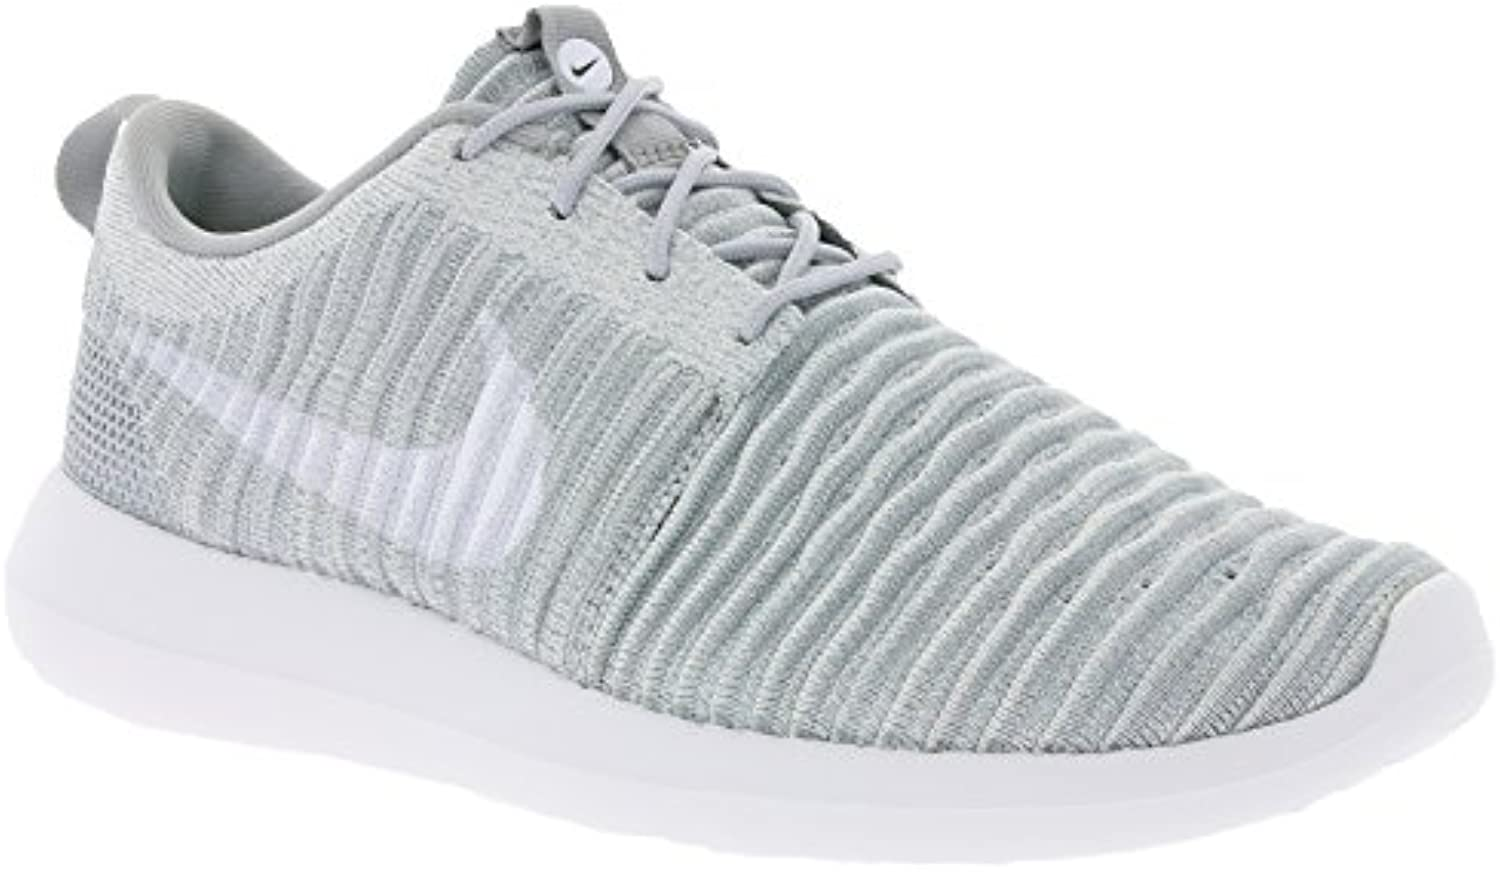 Nike Roshe Two Flyknit Zapatillas Trainer, Color Gris, Talla 40